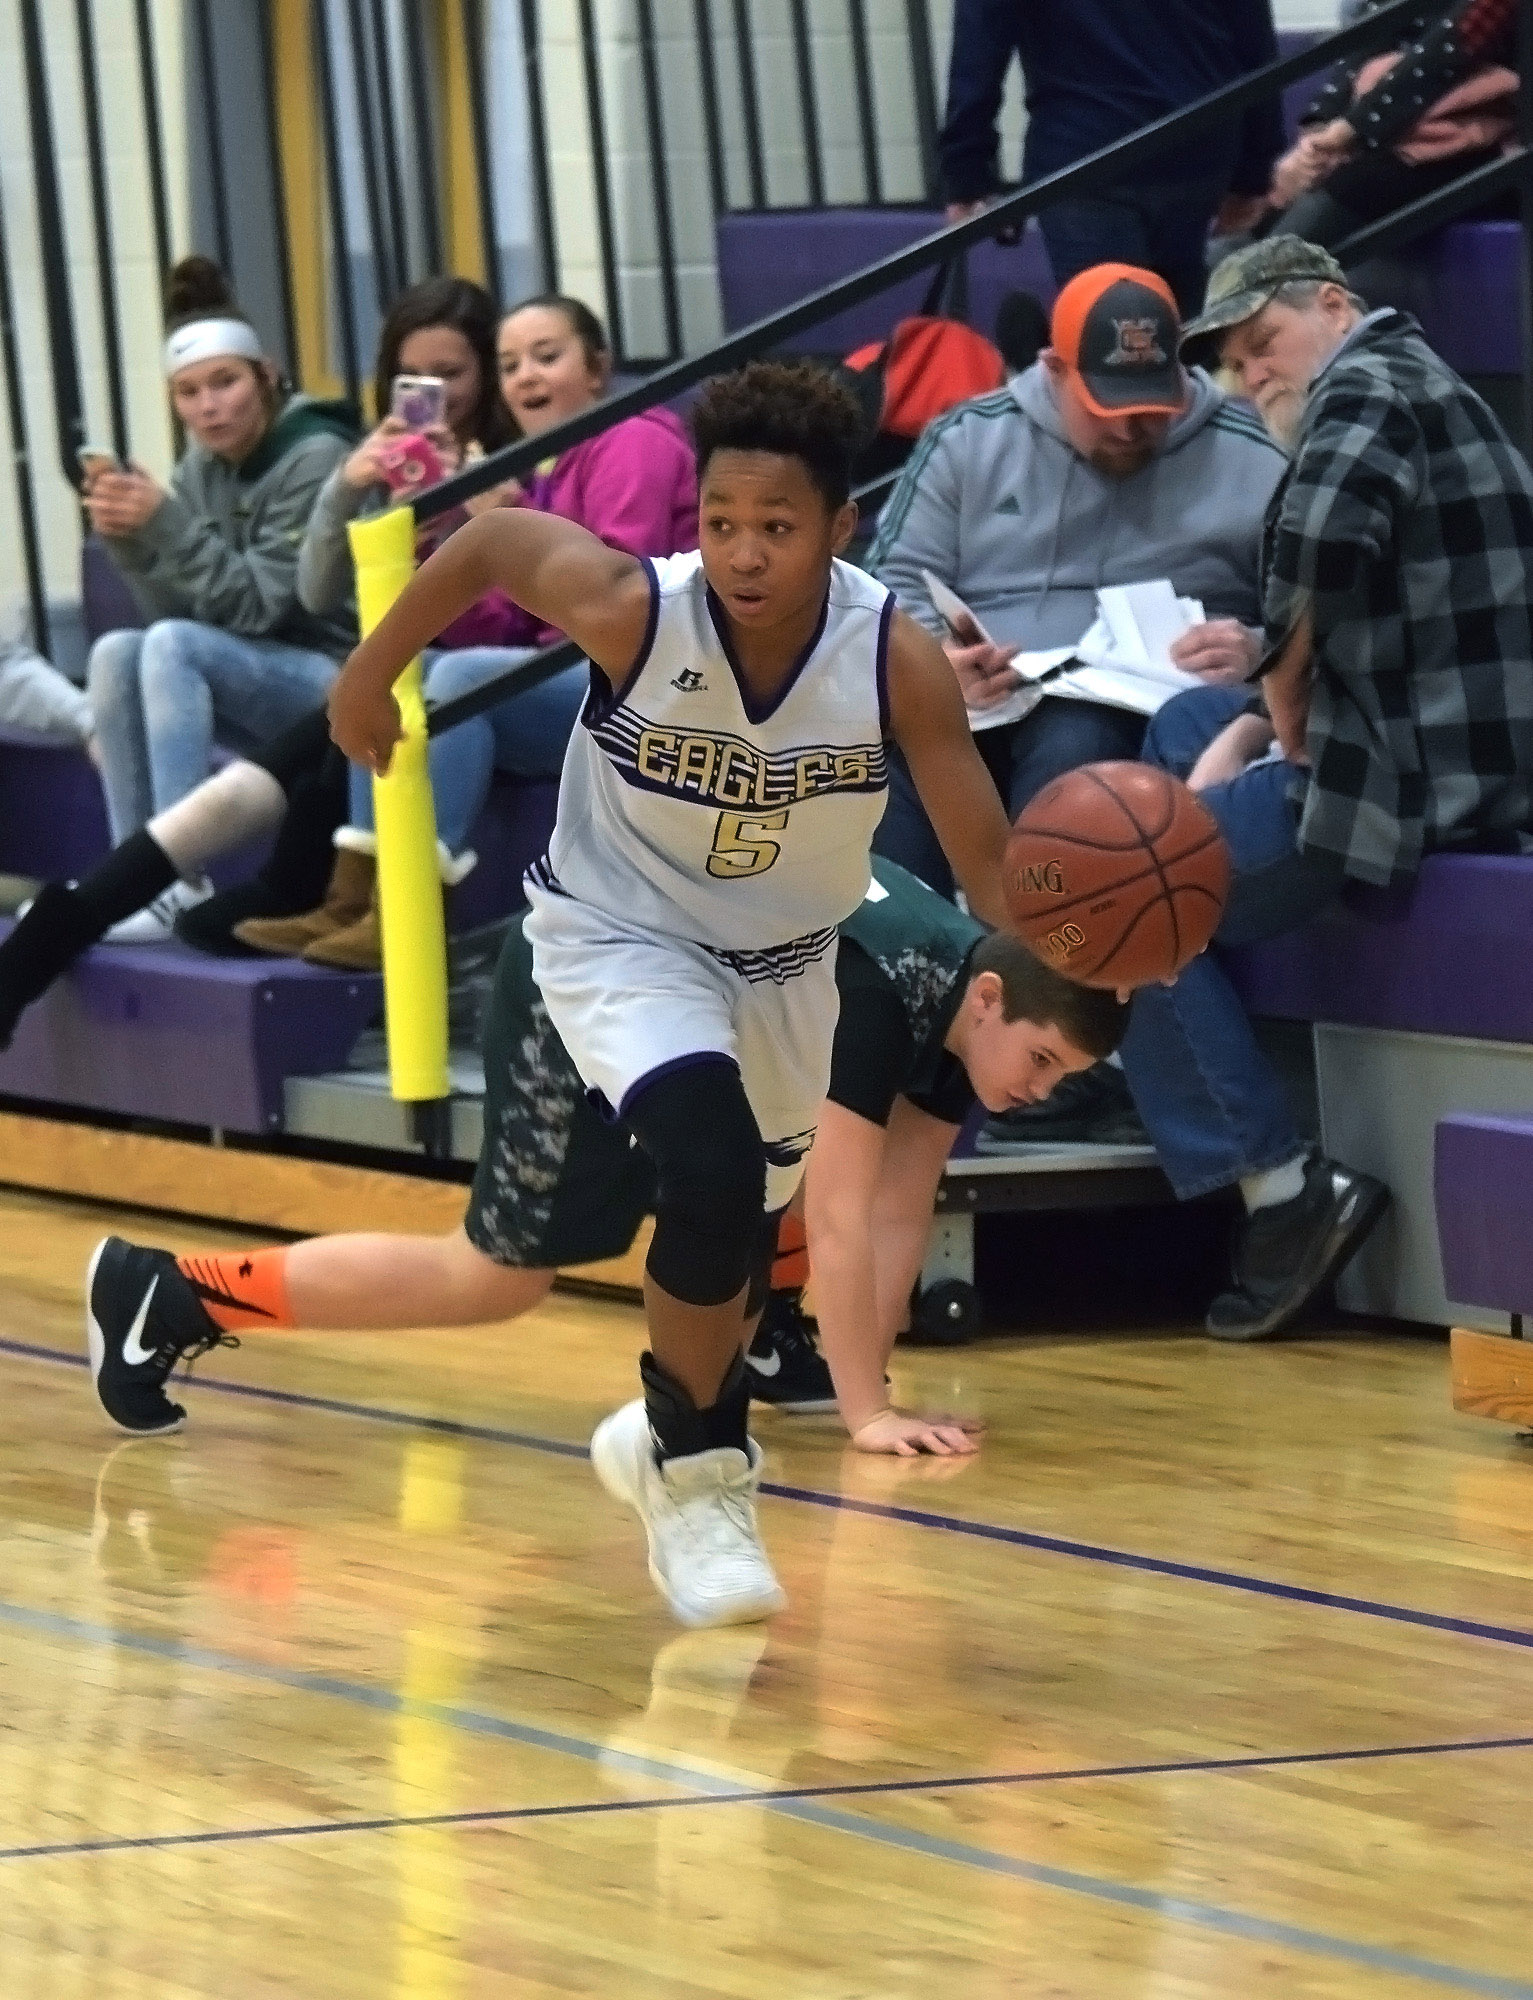 CMS seventh-grader Deondre Weathers dribbles down the court.